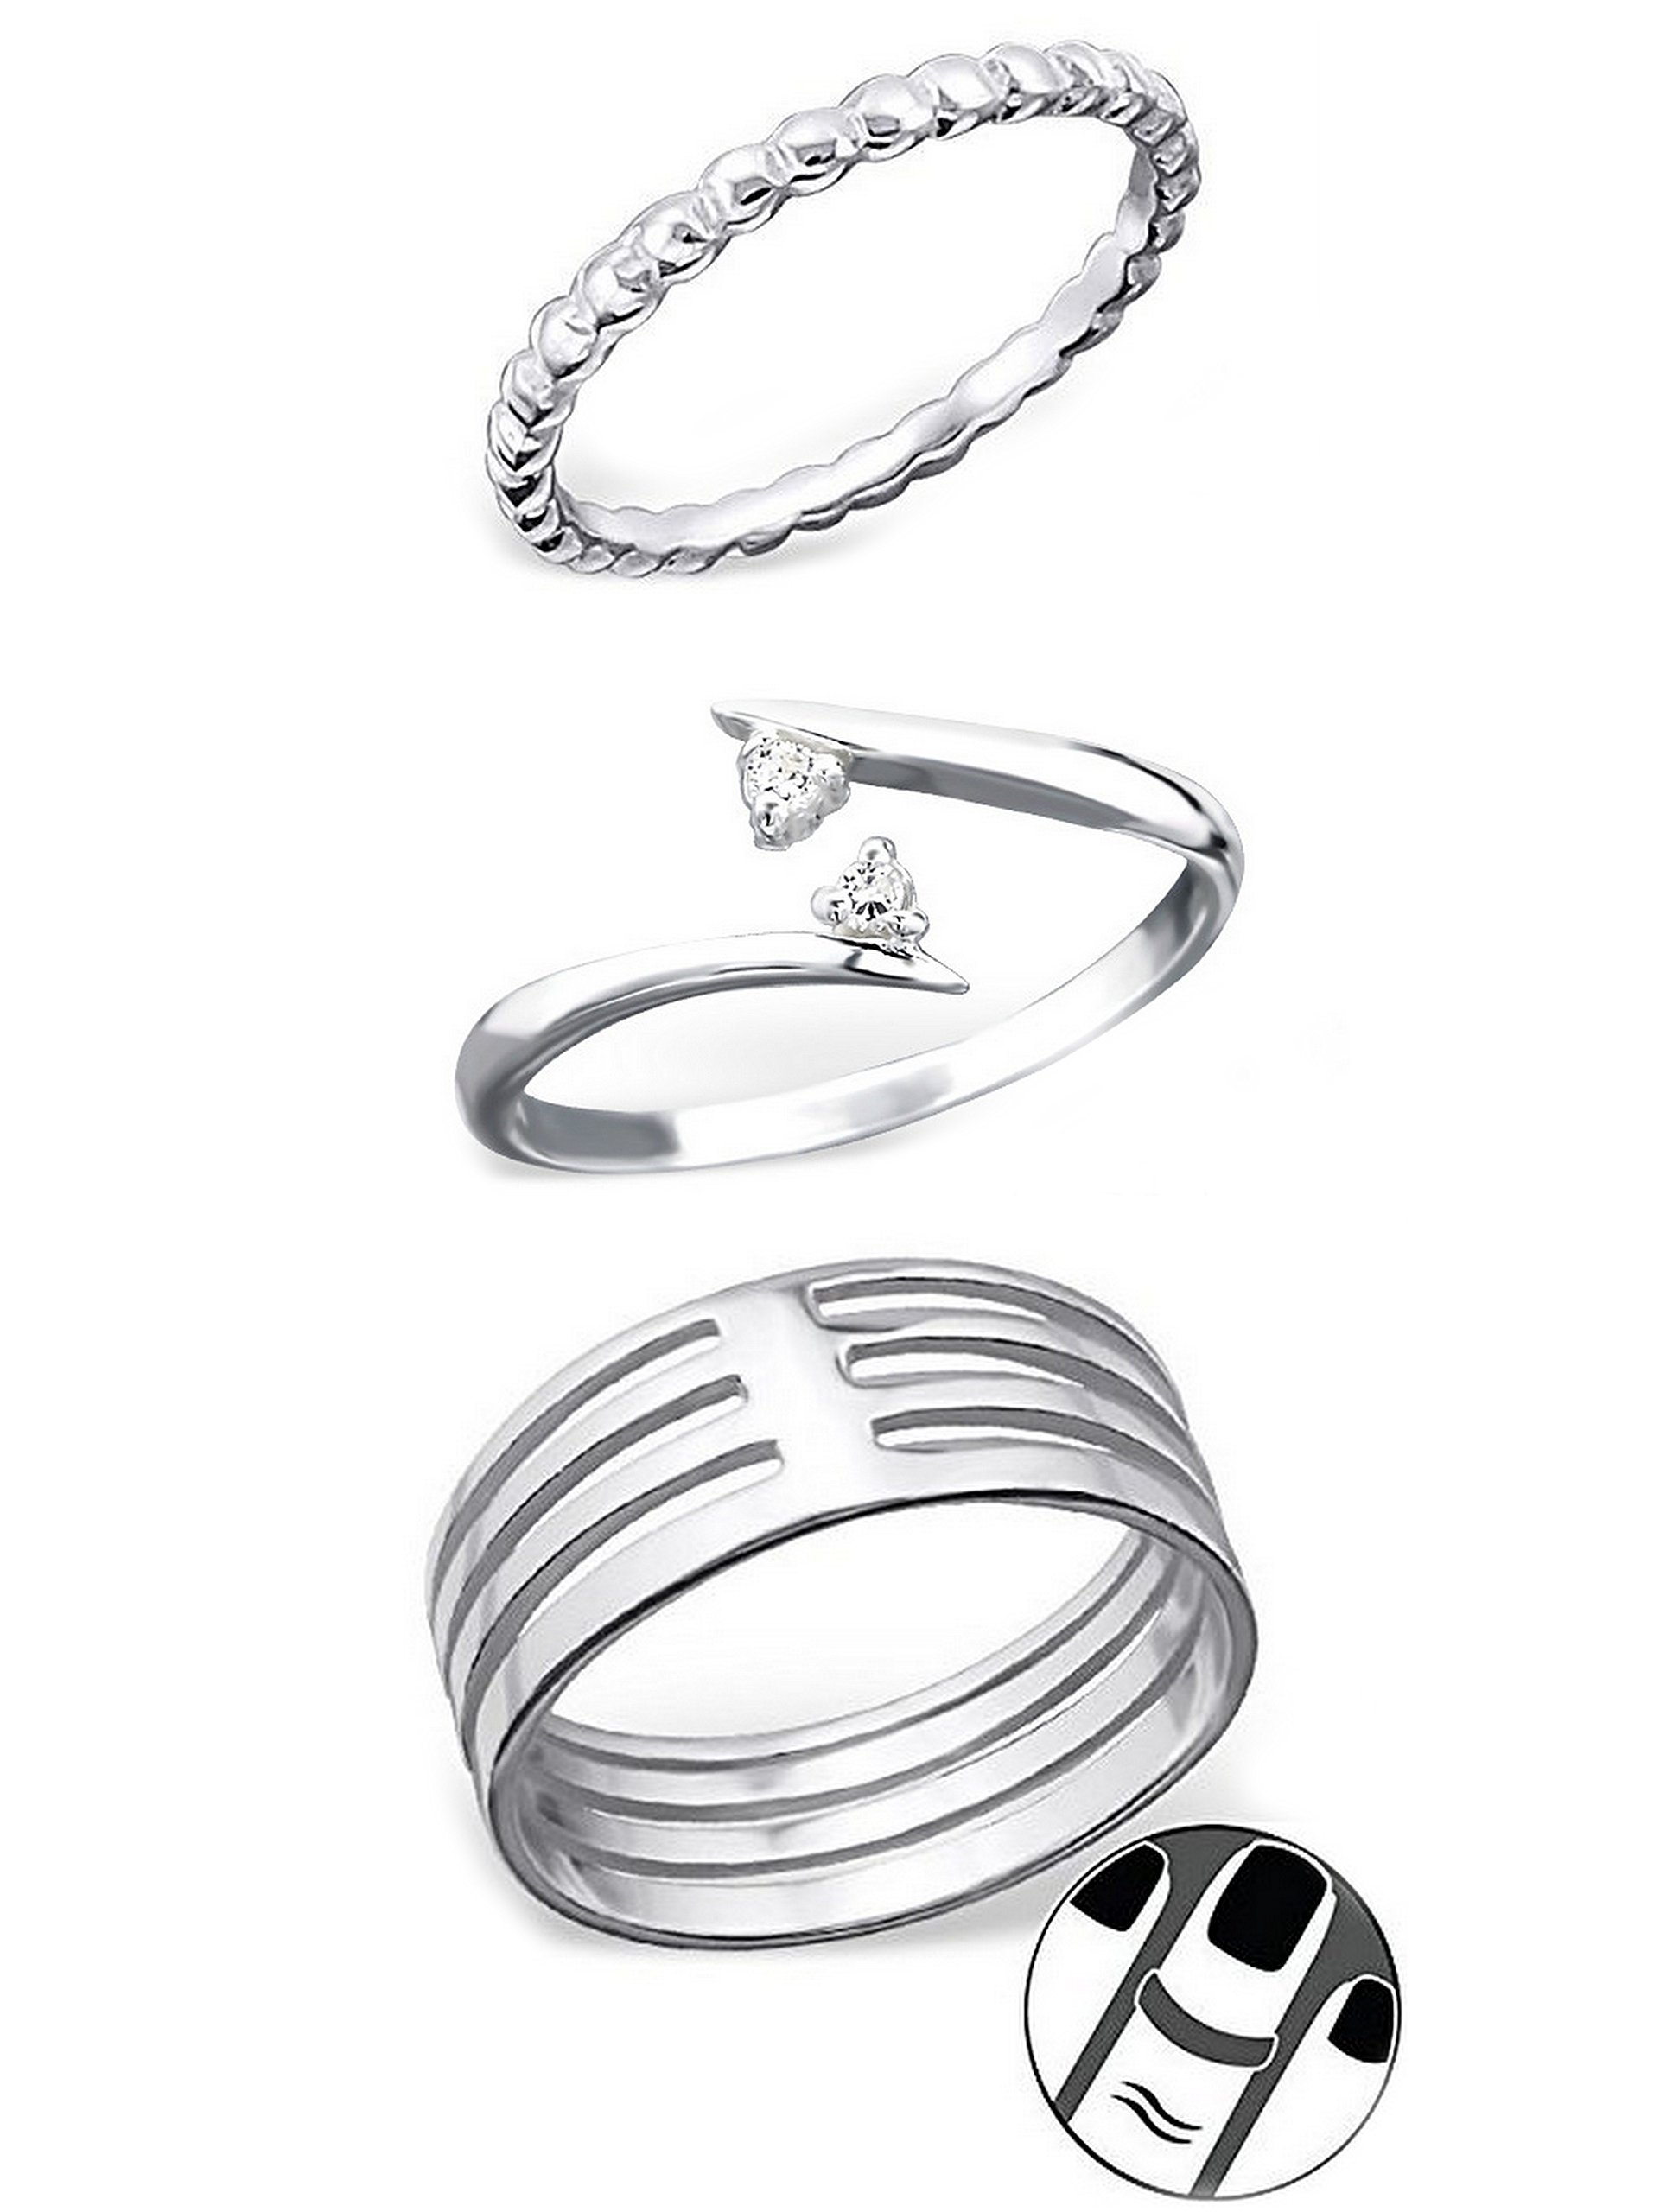 925 Sterling Silver set of 3 Textured, Double Crystal, Four Connected Above Knuckle Ring Mid Finger Top